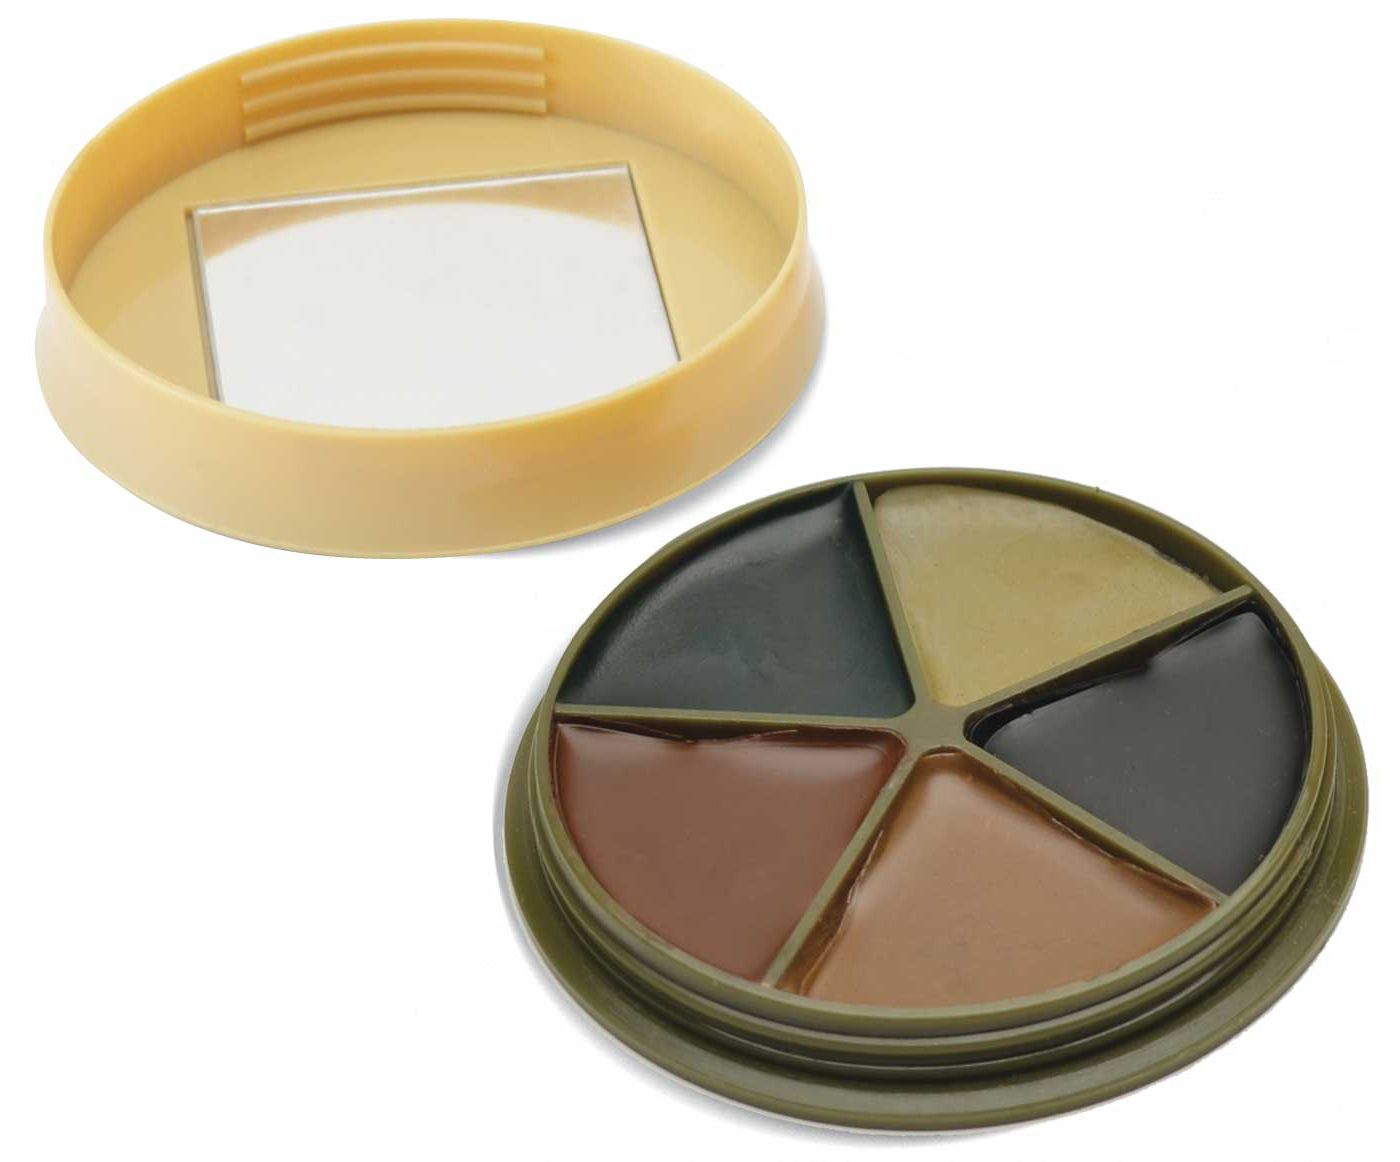 GSM 5 Color Compact Face Paint